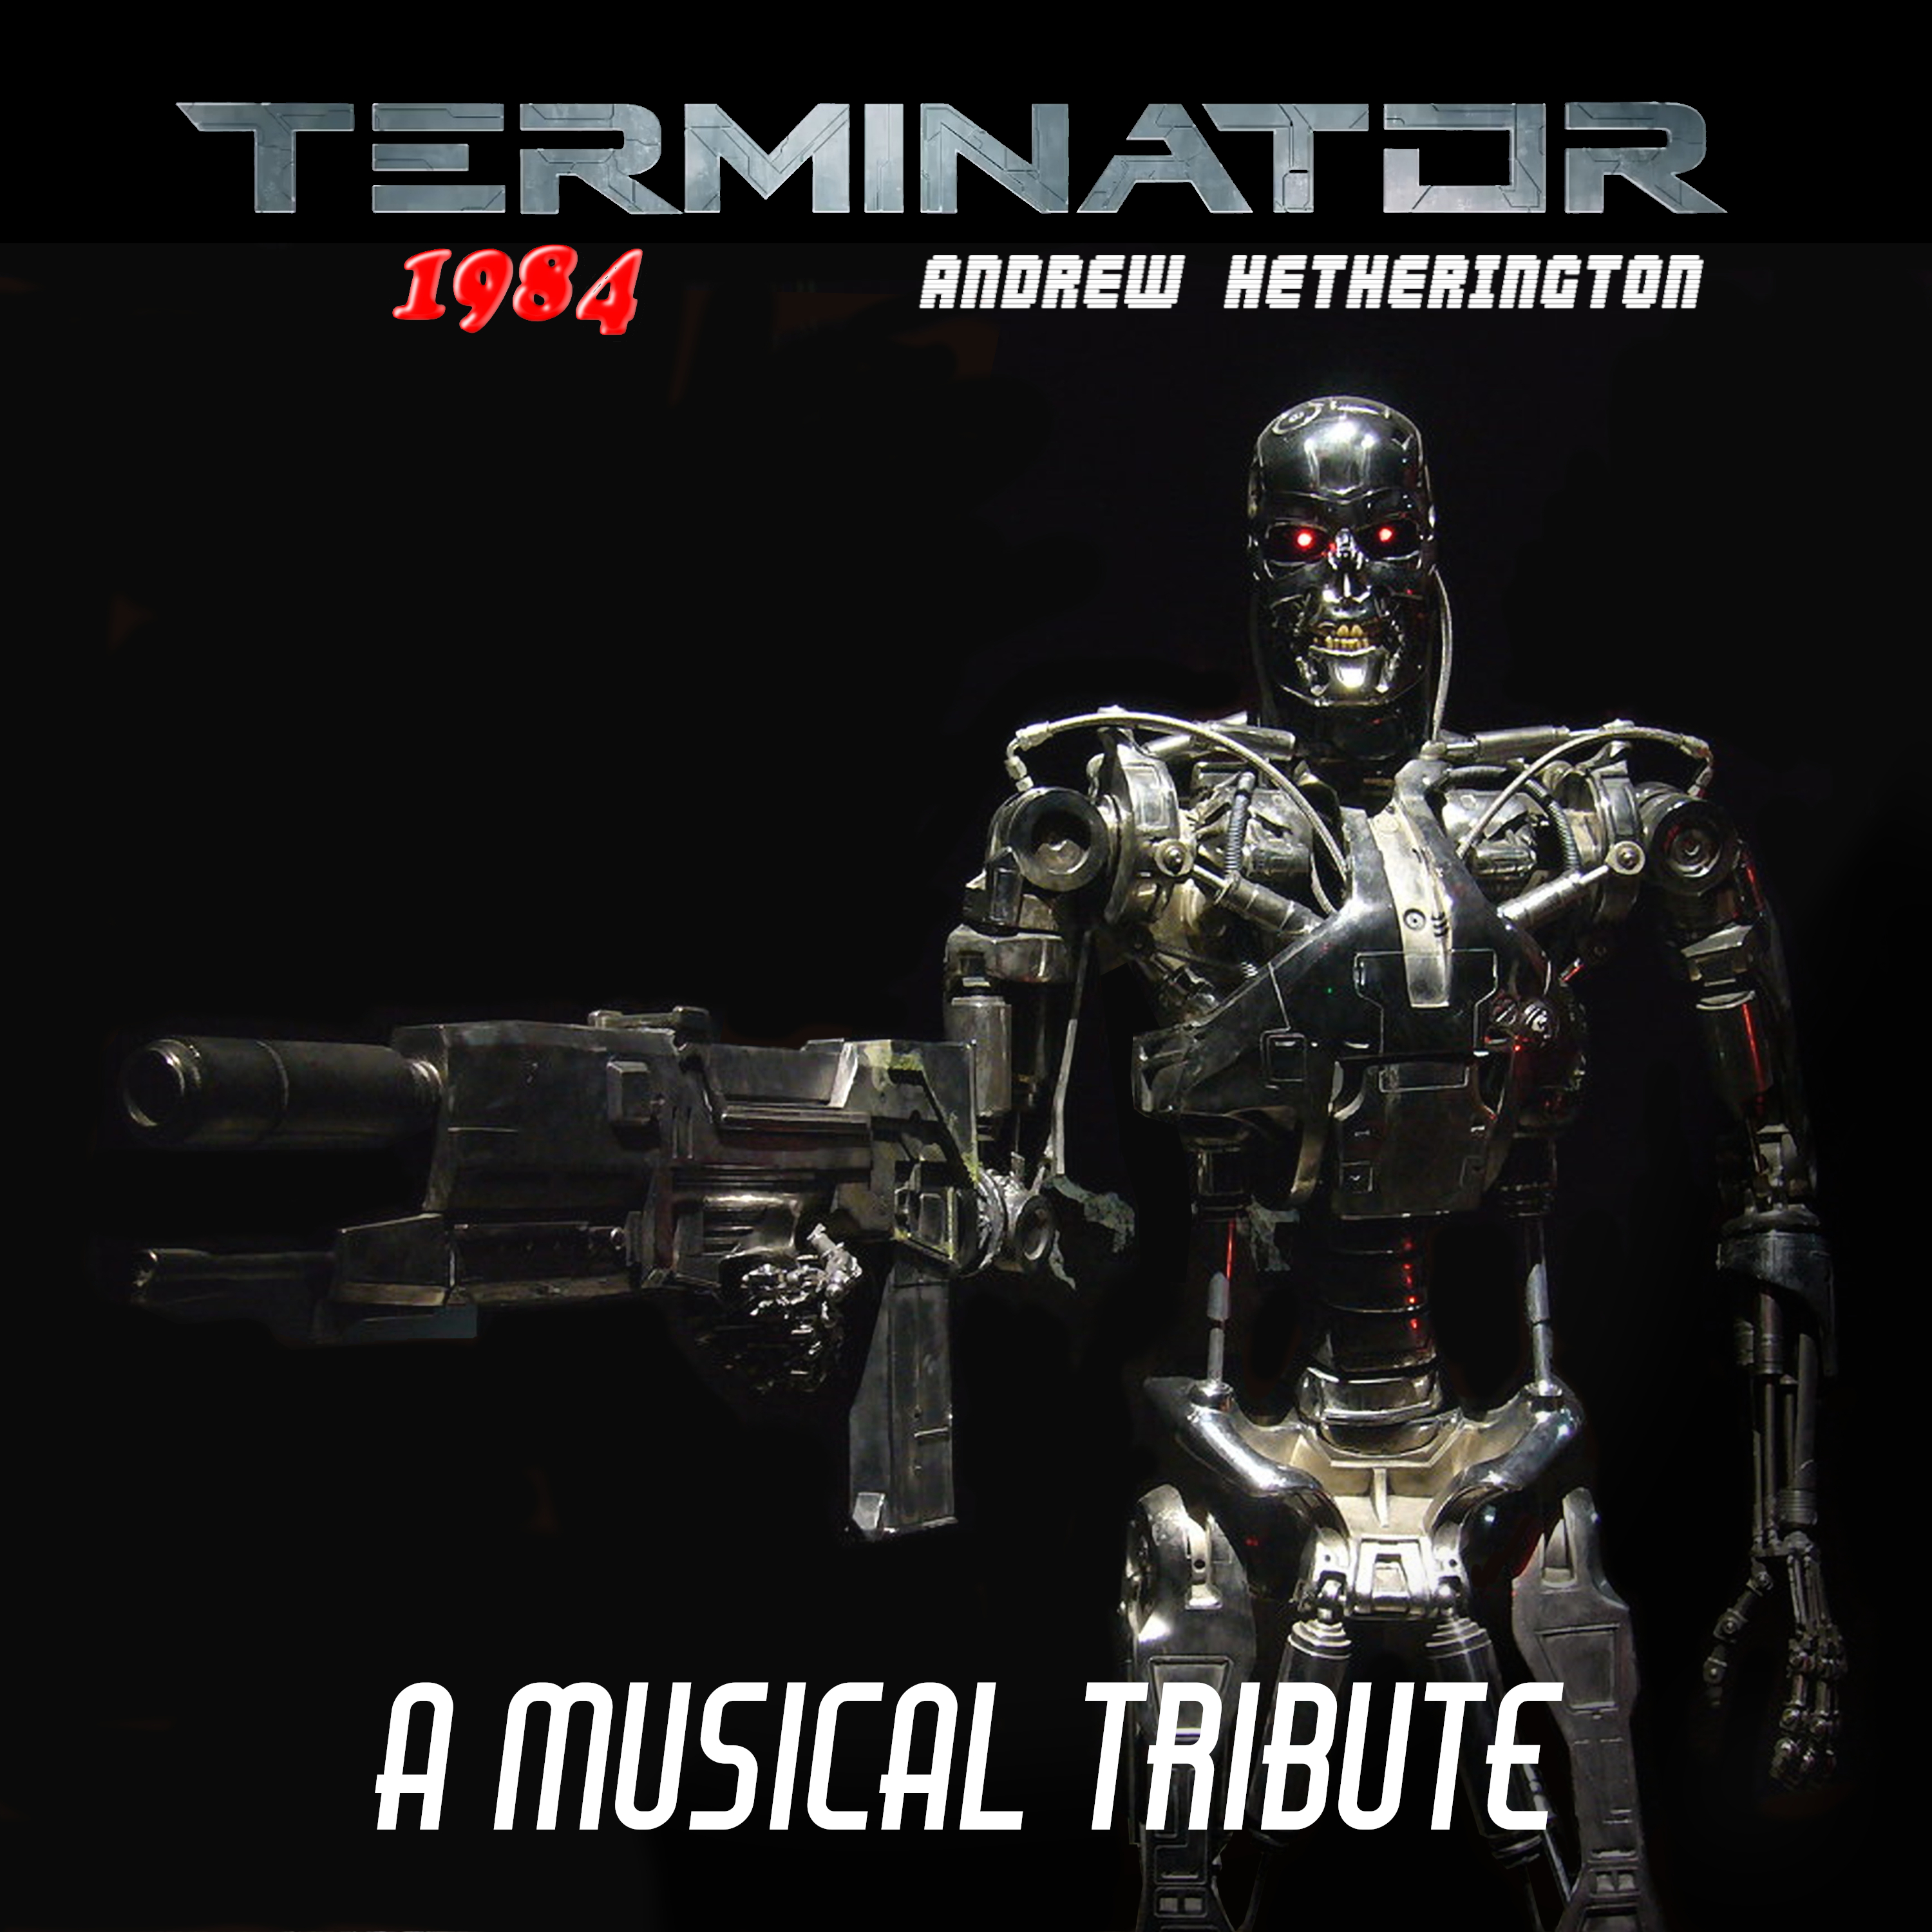 Terminator 1984: A Musical Tribute by Andrew Hetherington